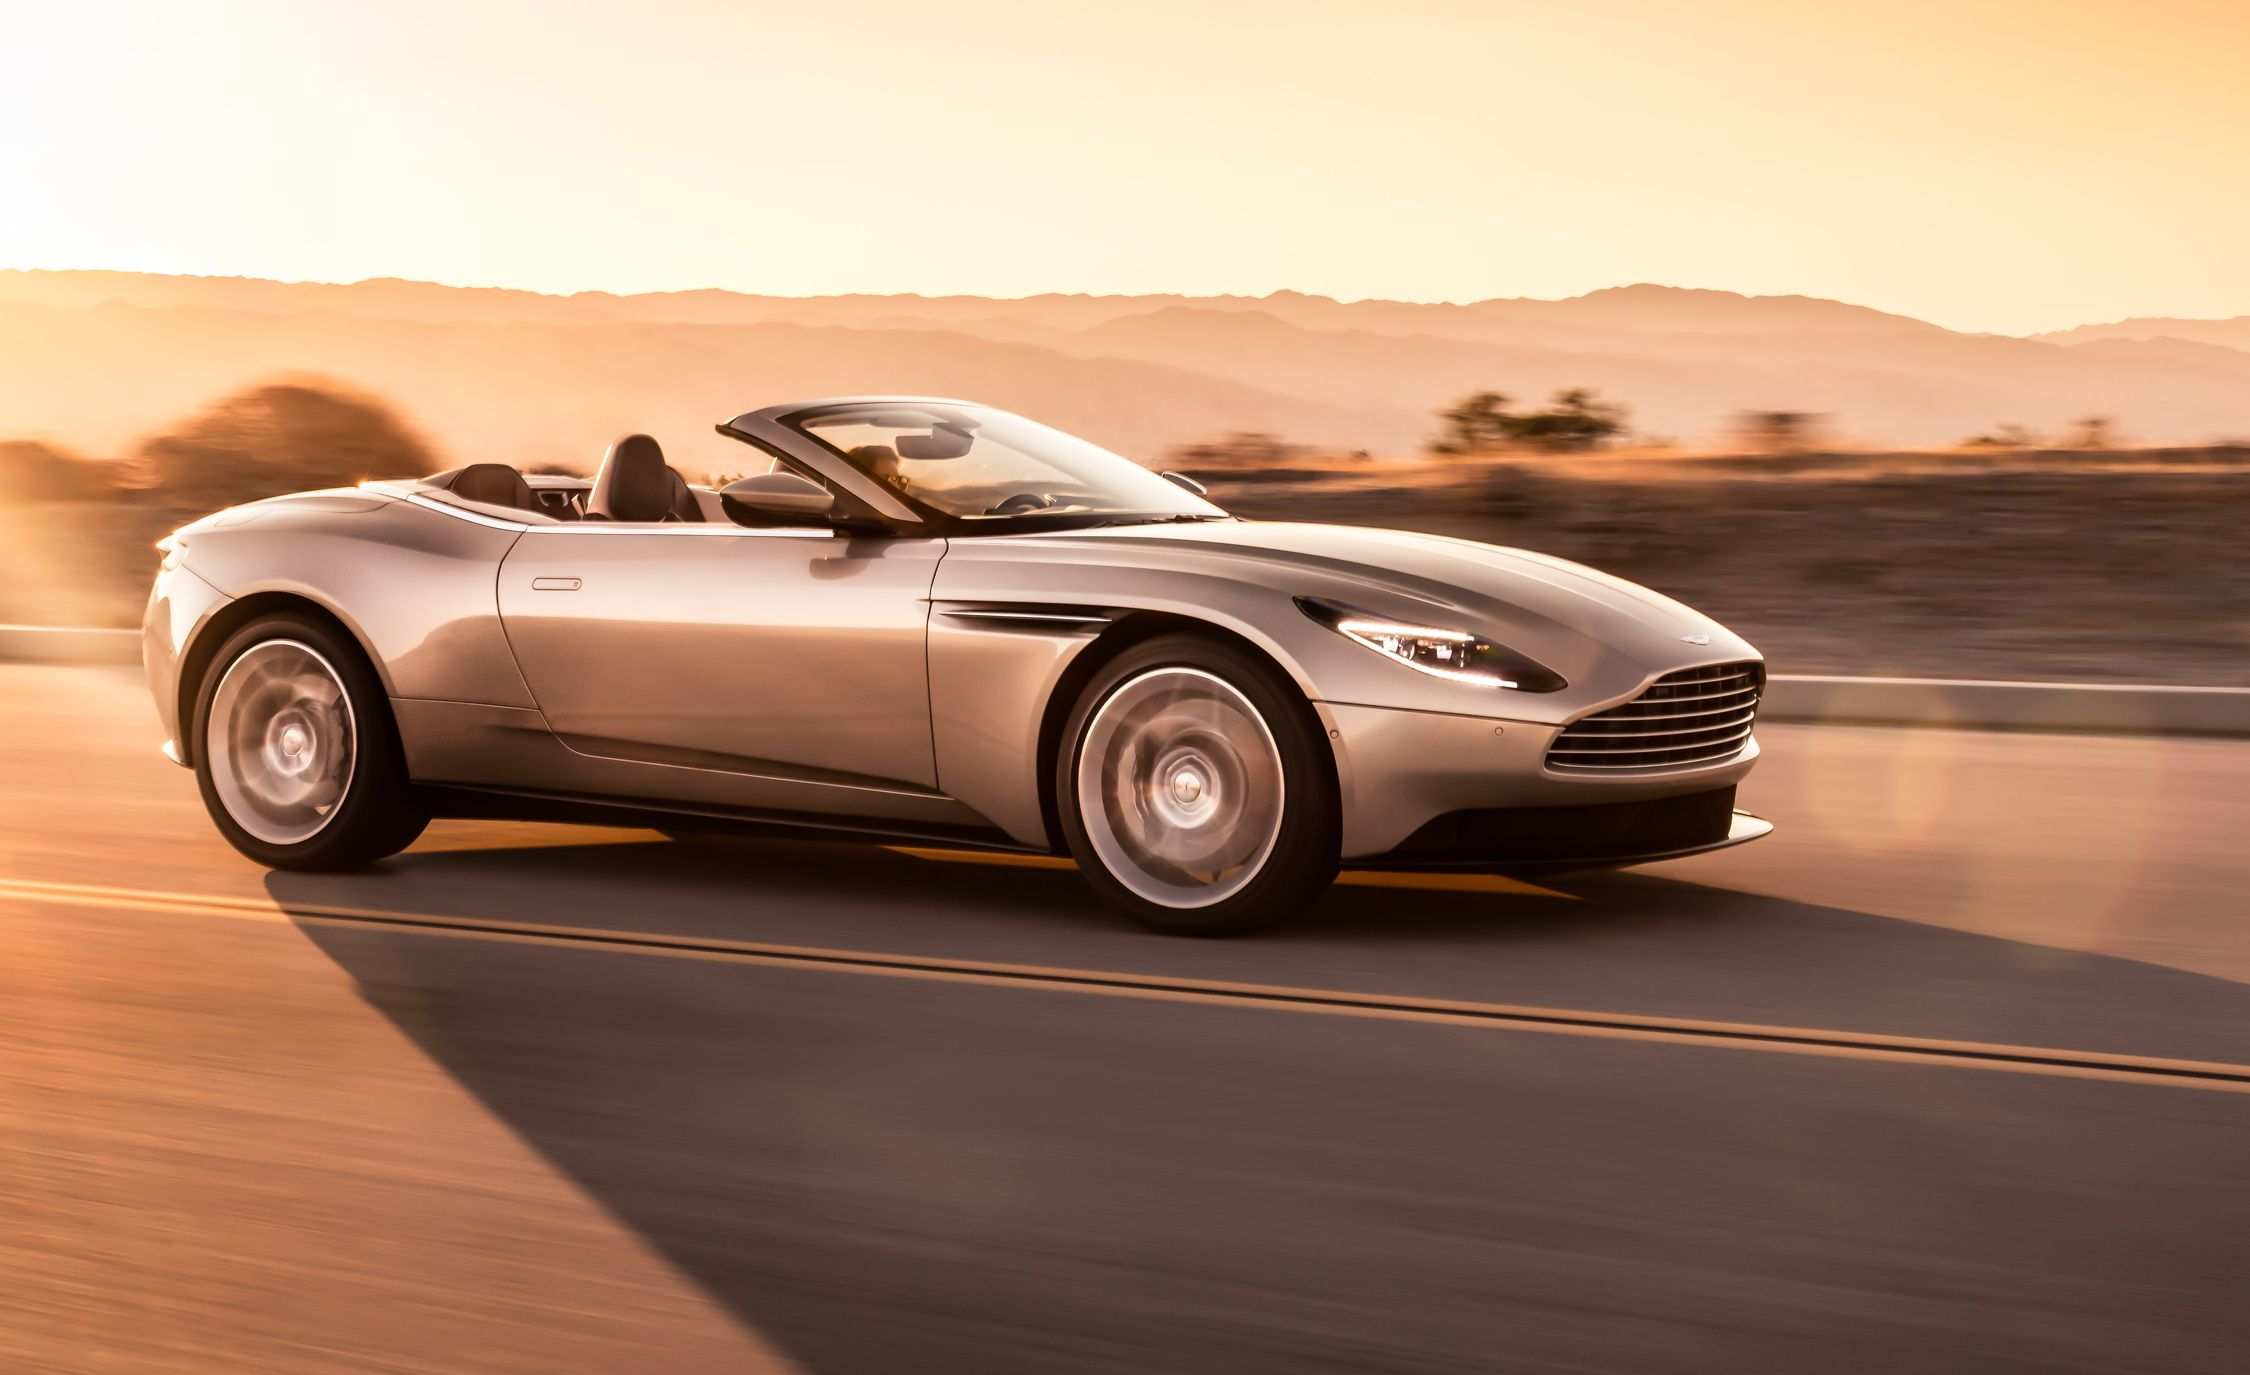 99 The 2019 Aston Martin Db11 New Review with 2019 Aston Martin Db11